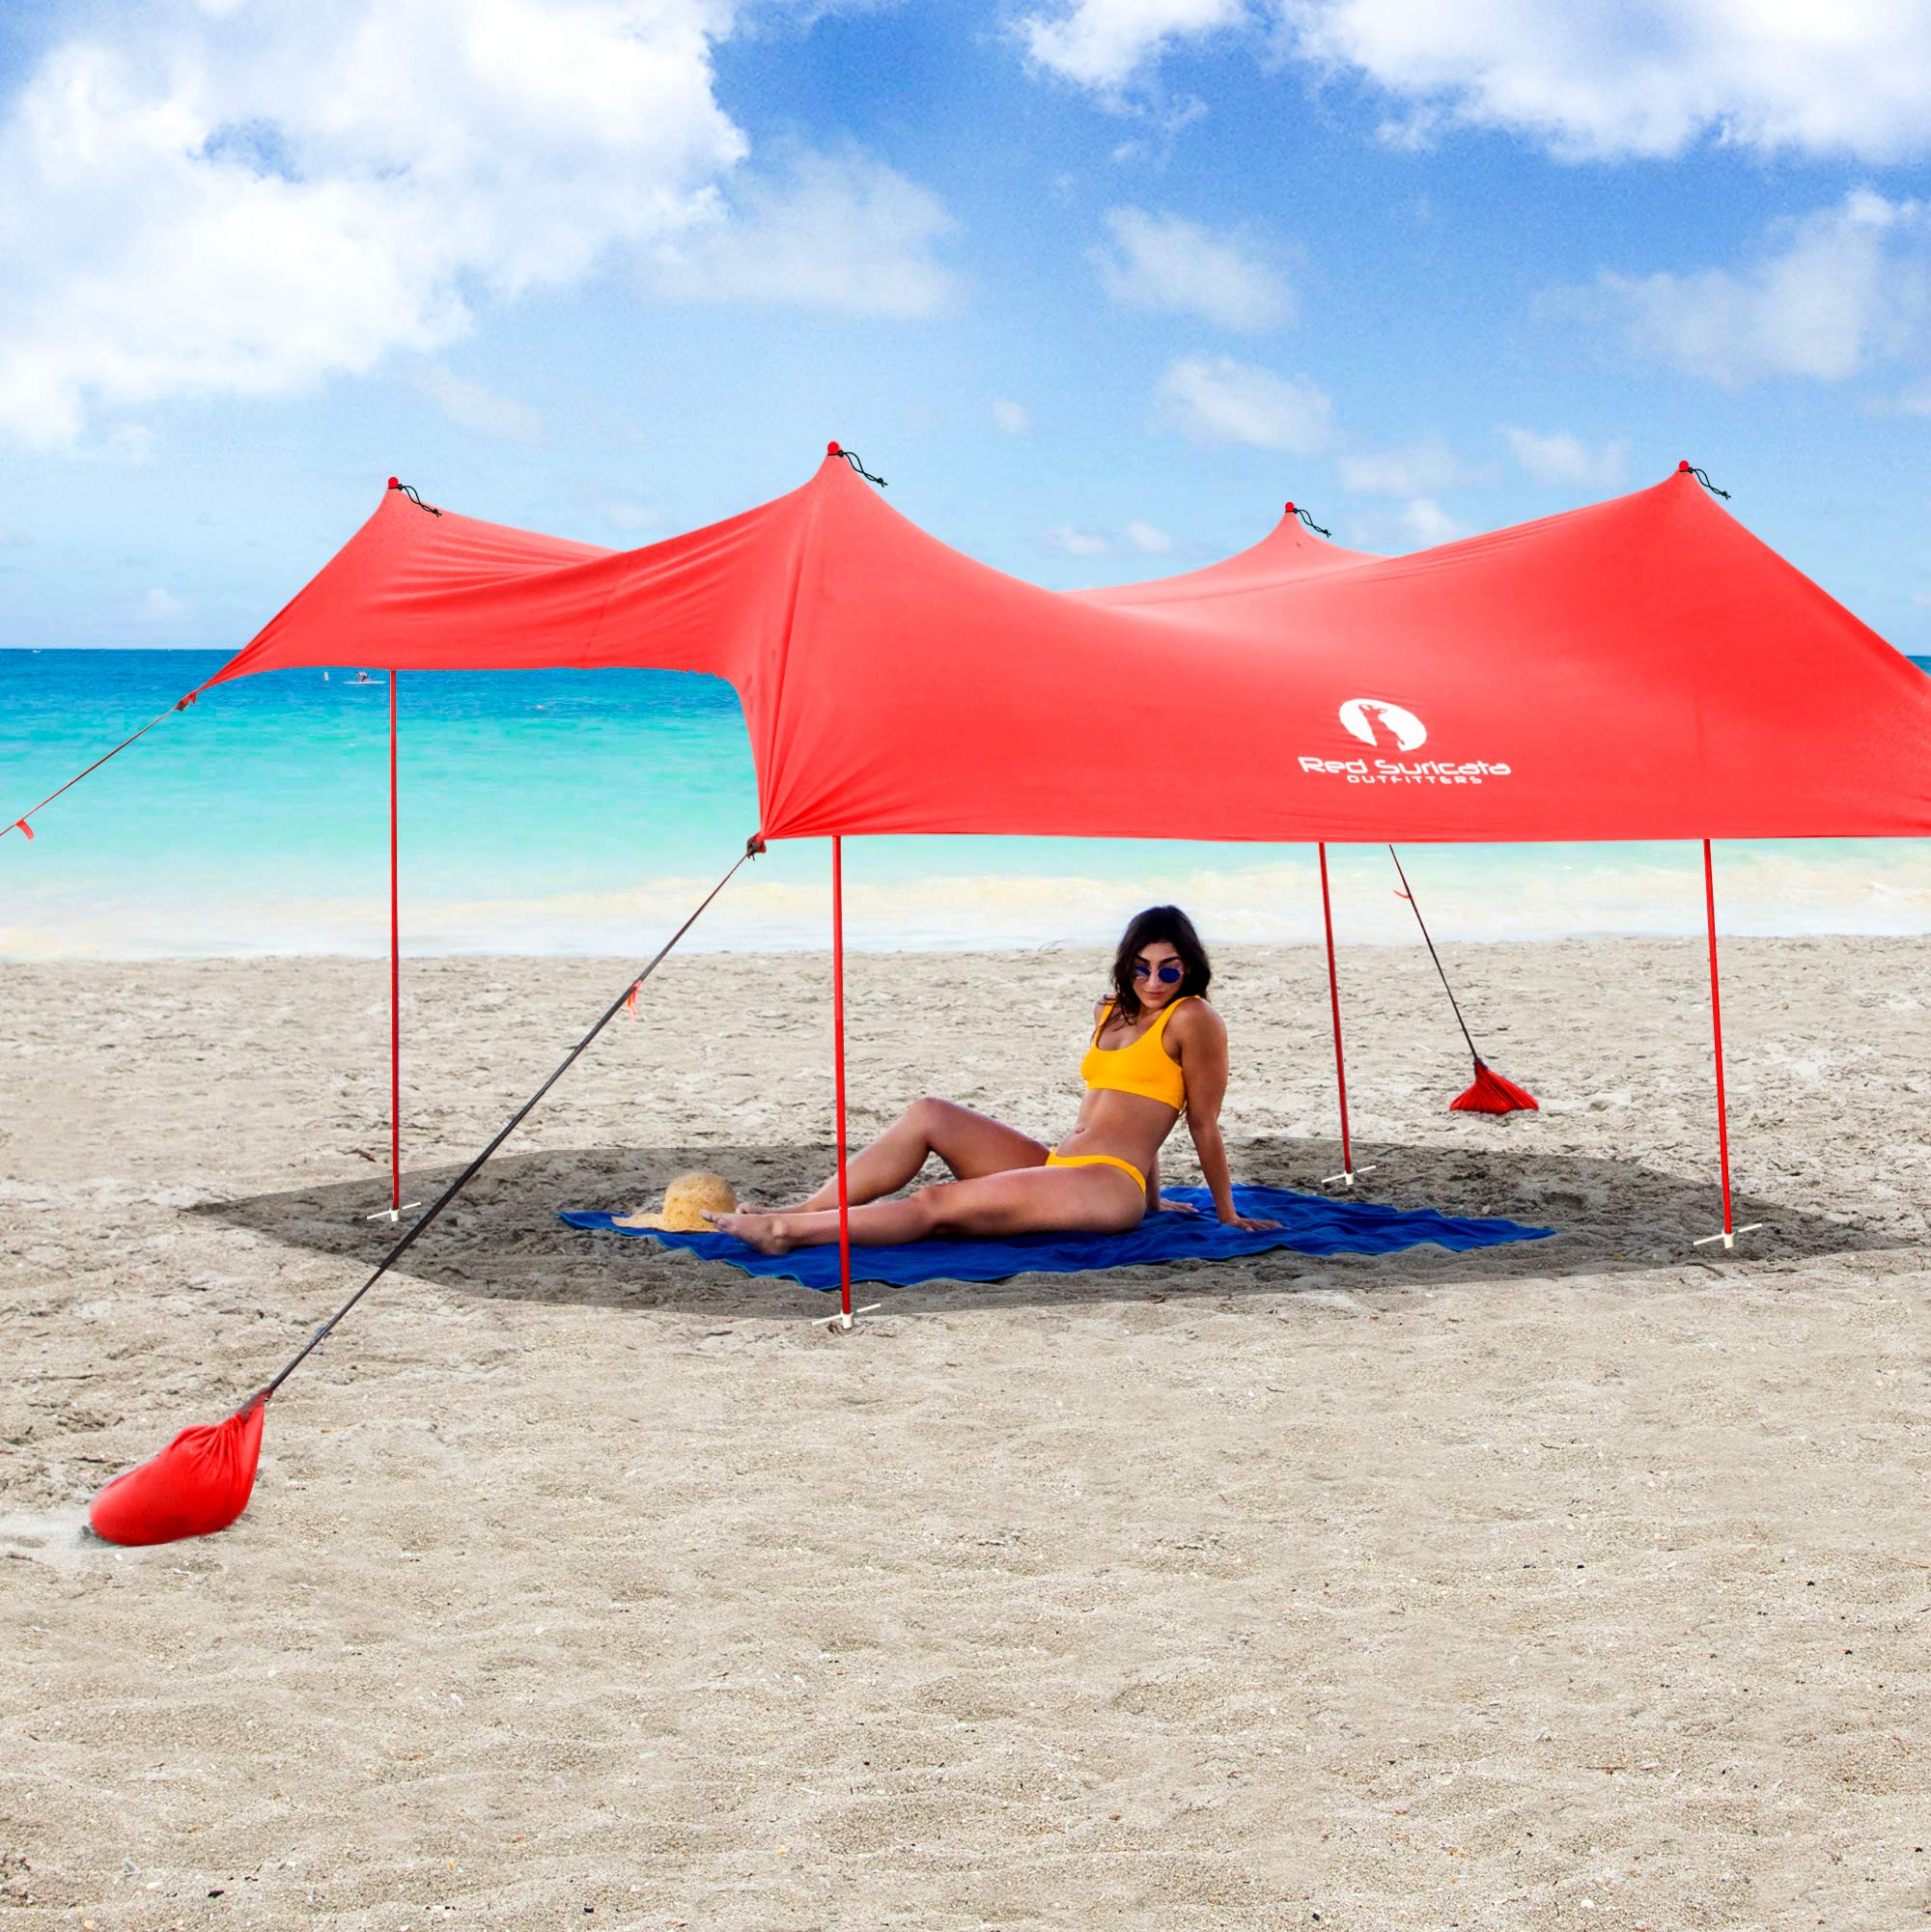 Red Suricata Family Beach Sunshade - Sun Shade Canopy | UPF50 UV Protection | Tent with 4 Aluminum Poles, 4 Pole Anchors, 4 Sandbag Anchors | Large & Portable Shelter Tarp (Red, Large) by Red Suricata